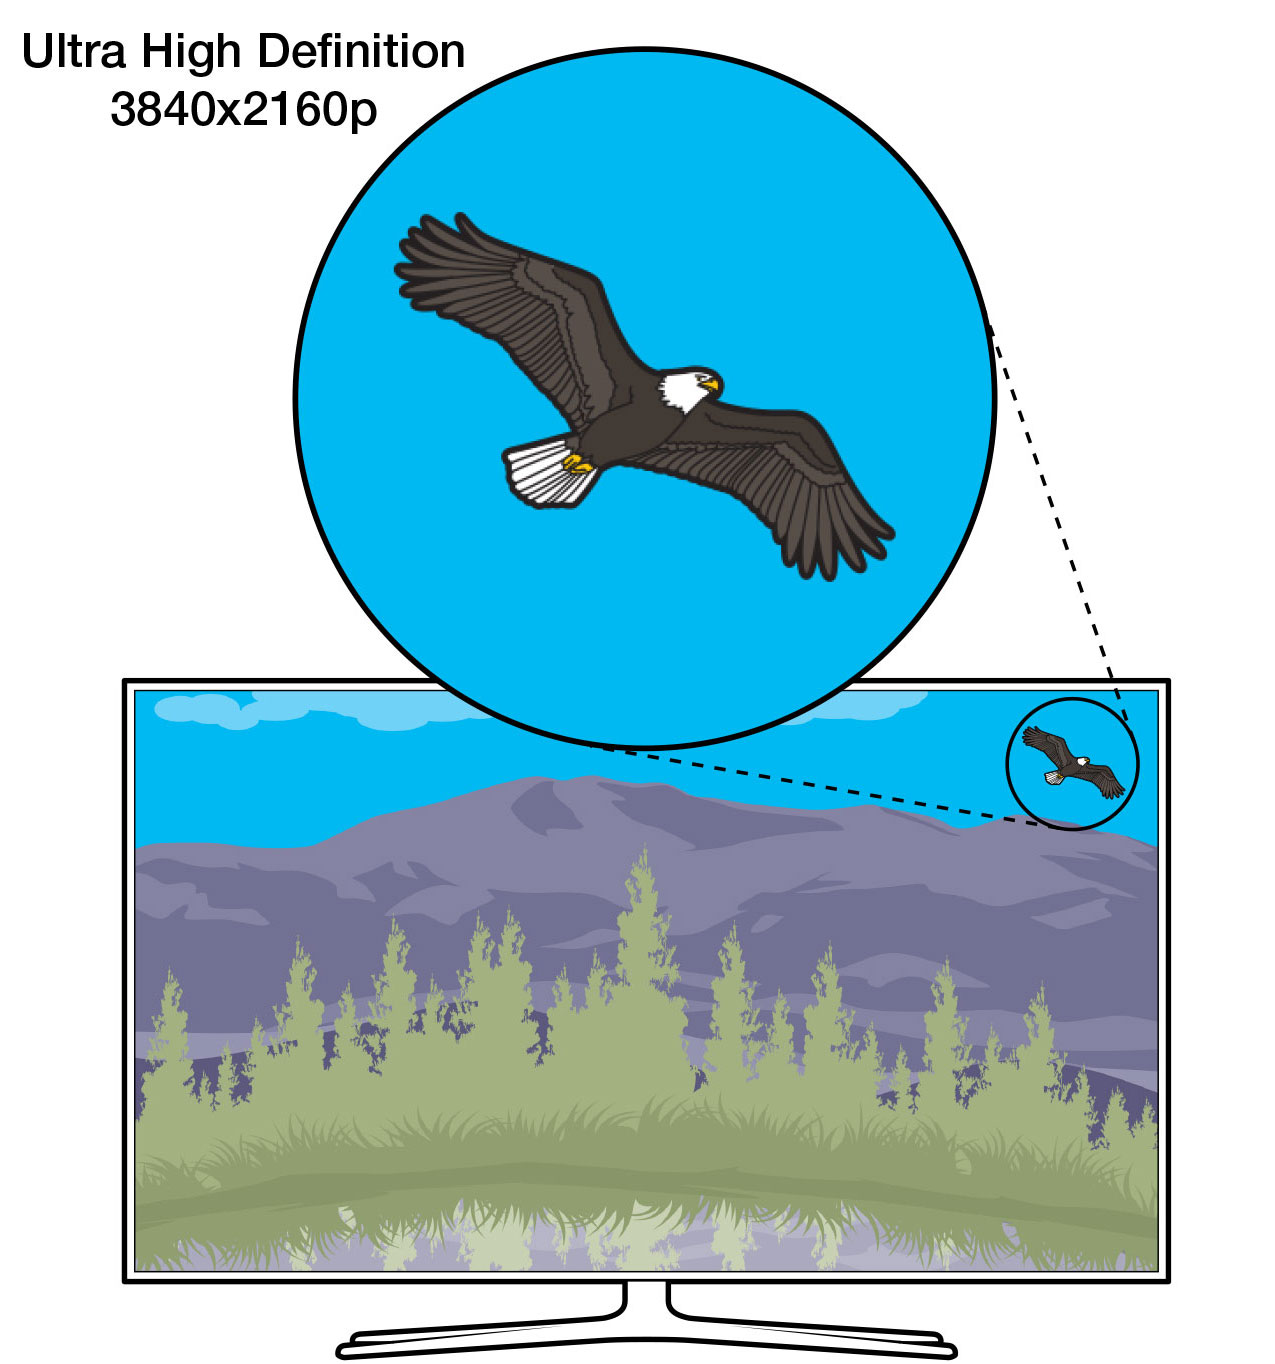 An illustration showing a close-up of the pixels of an UHD TV (also known as 4K TV), highlighting the visual detail capabilities of such an ultra high-definition TV set.